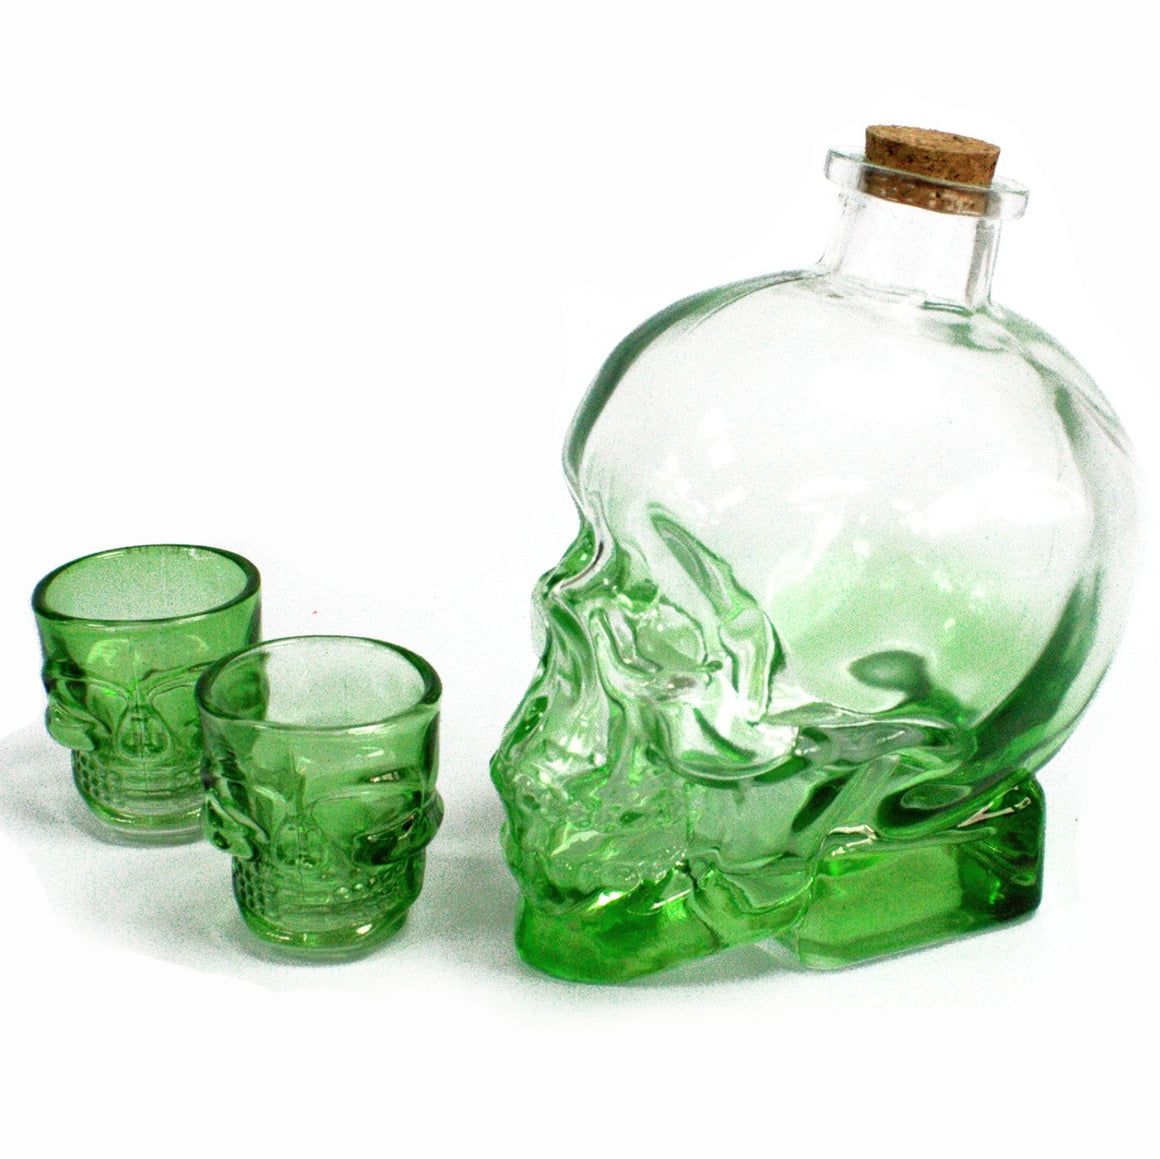 Demon Drink Set - With a Green Head